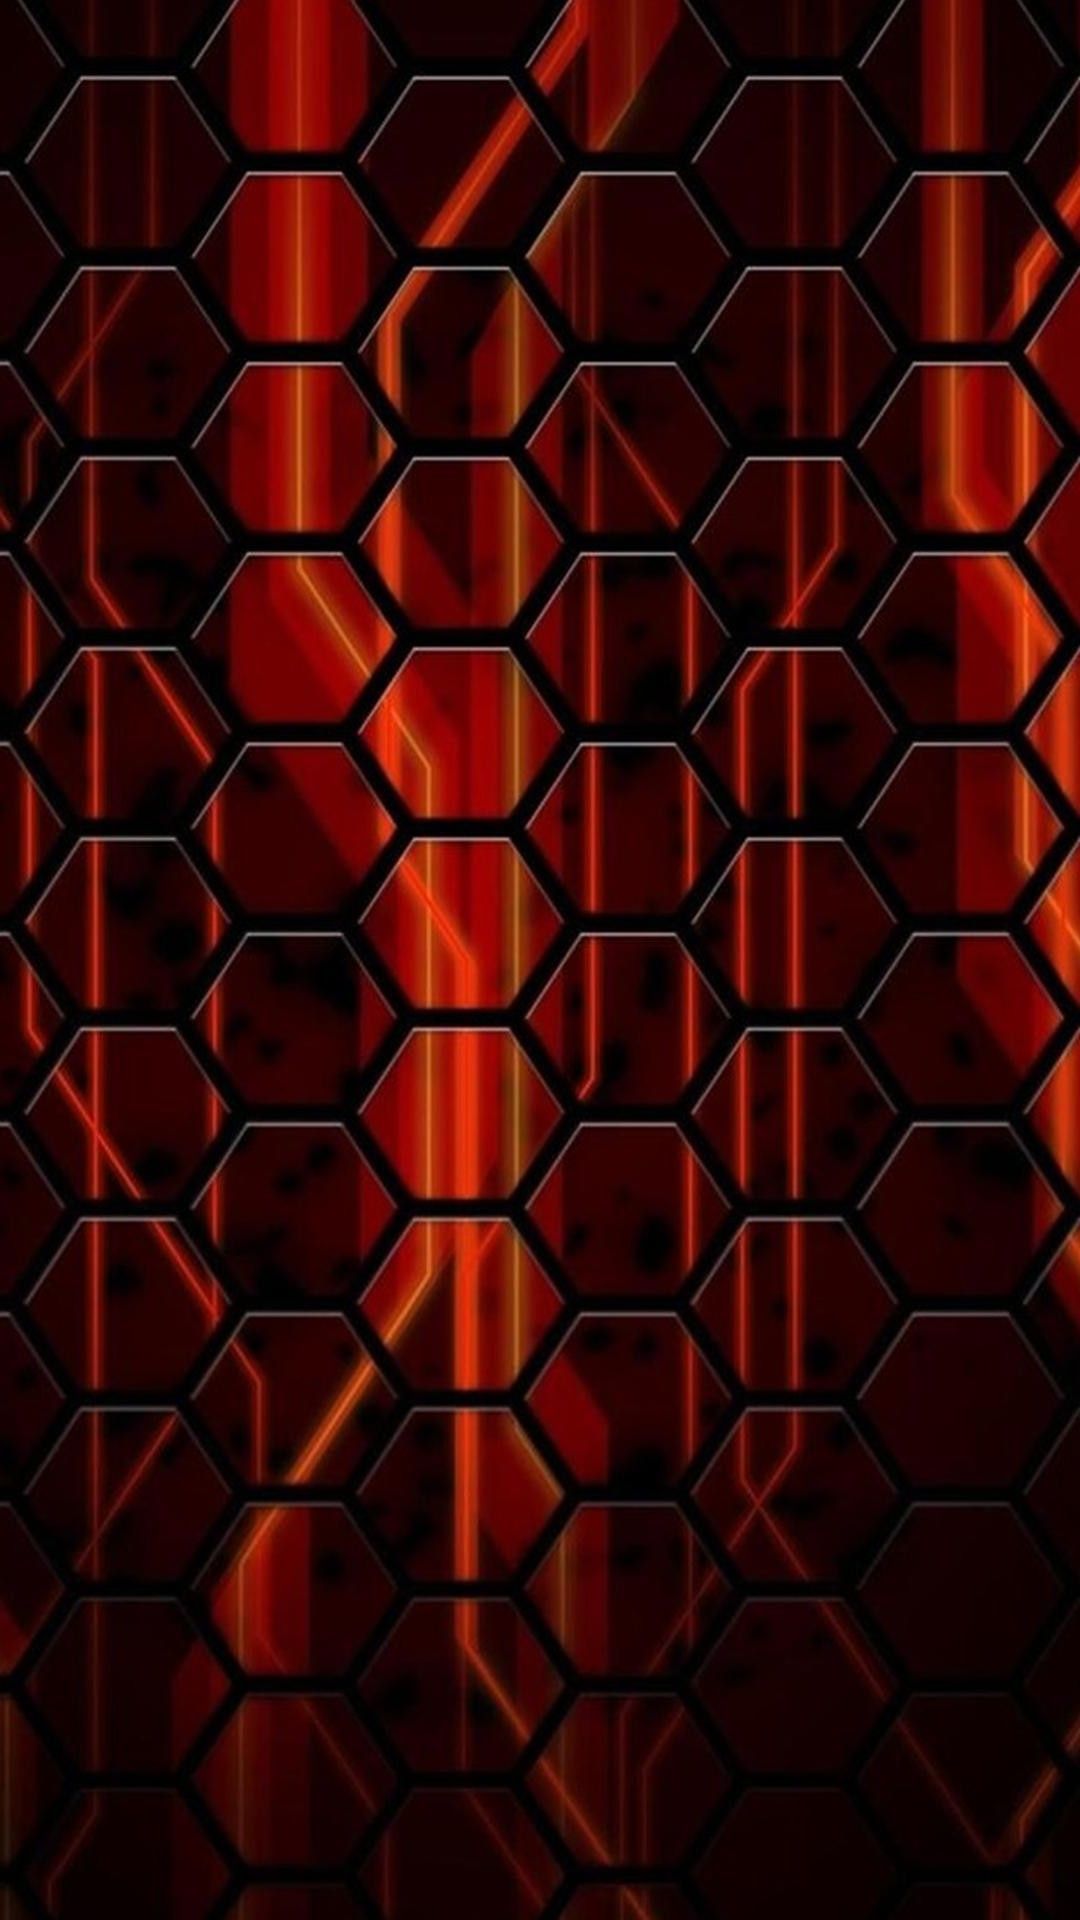 Abstract Android Wallpapers Hd 230 Hitam Wallpaper Ponsel Merah